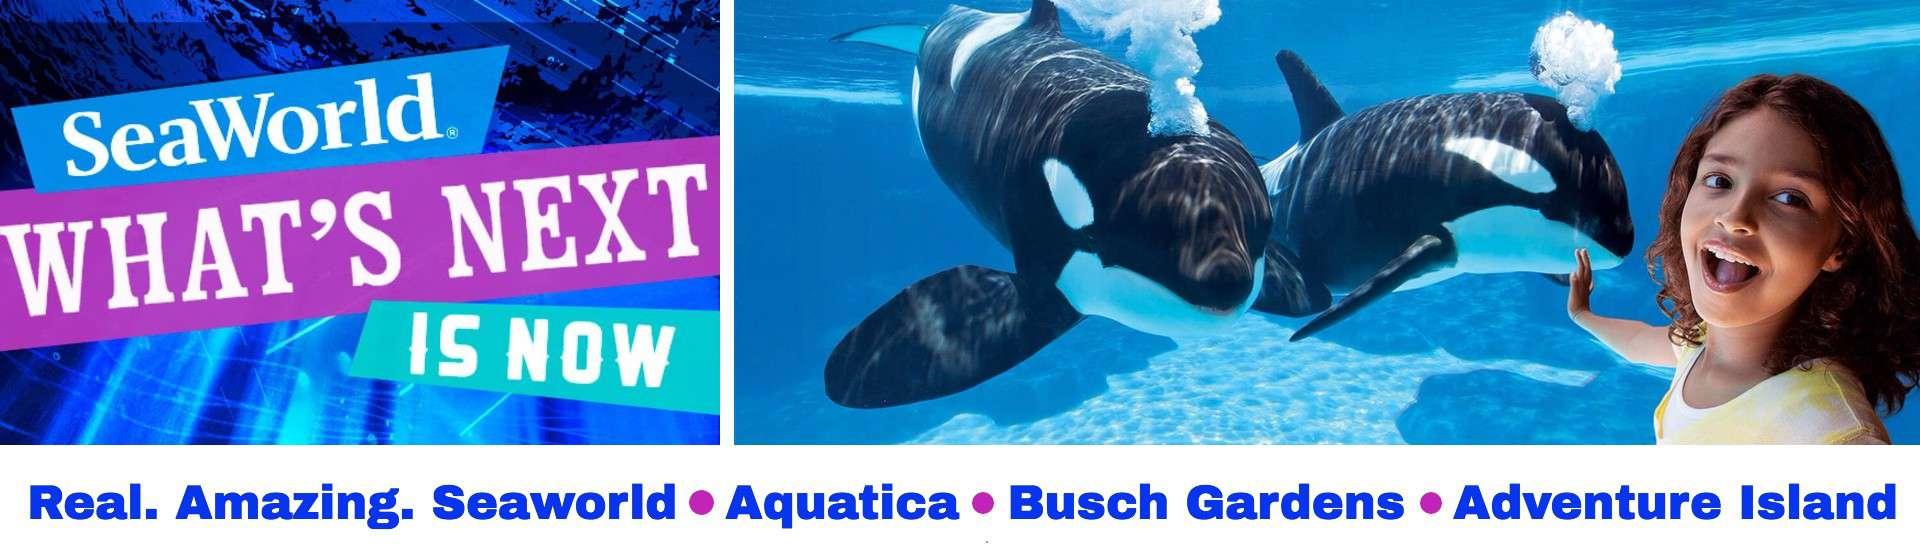 KGS Discount Attraction Tickets Orlando Seaworld HS